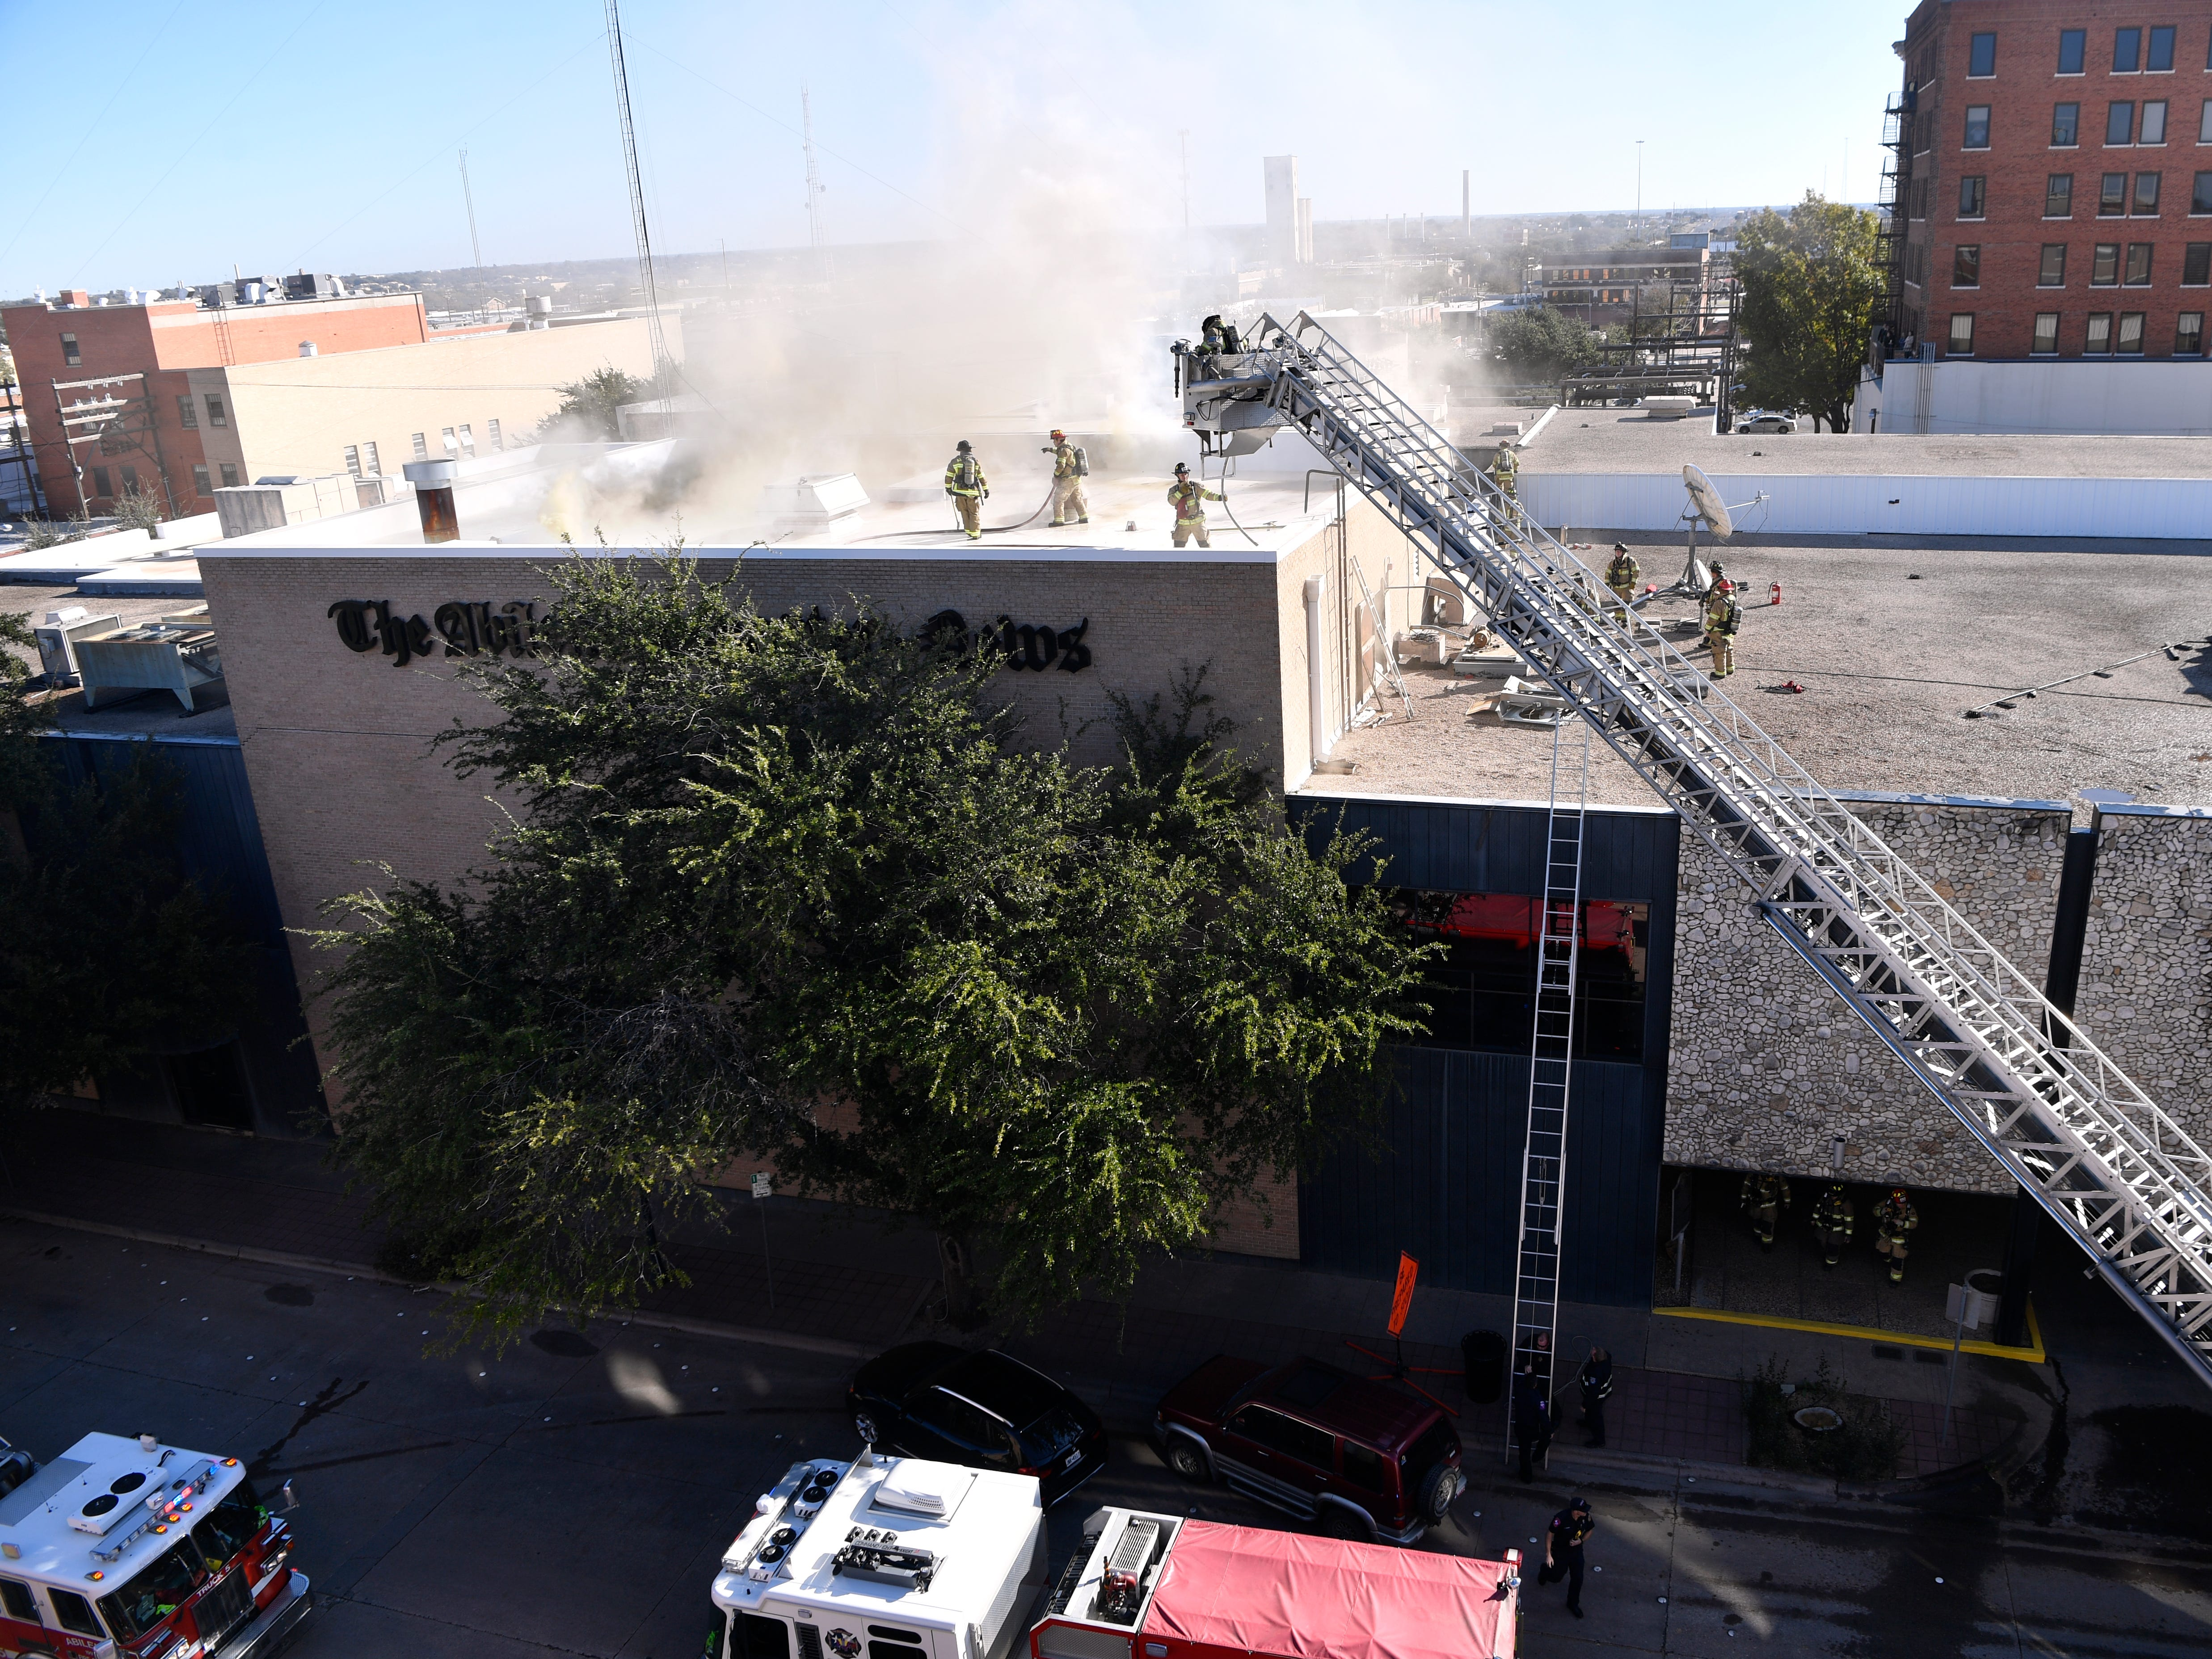 Abilene firefighters respond to a two-alarm blaze at the Abilene Reporter-News Thursday Nov. 15, 2018. The fire was called in at 9:20 a.m., at one time all three of the city's ladder trucks were employed during the fight.